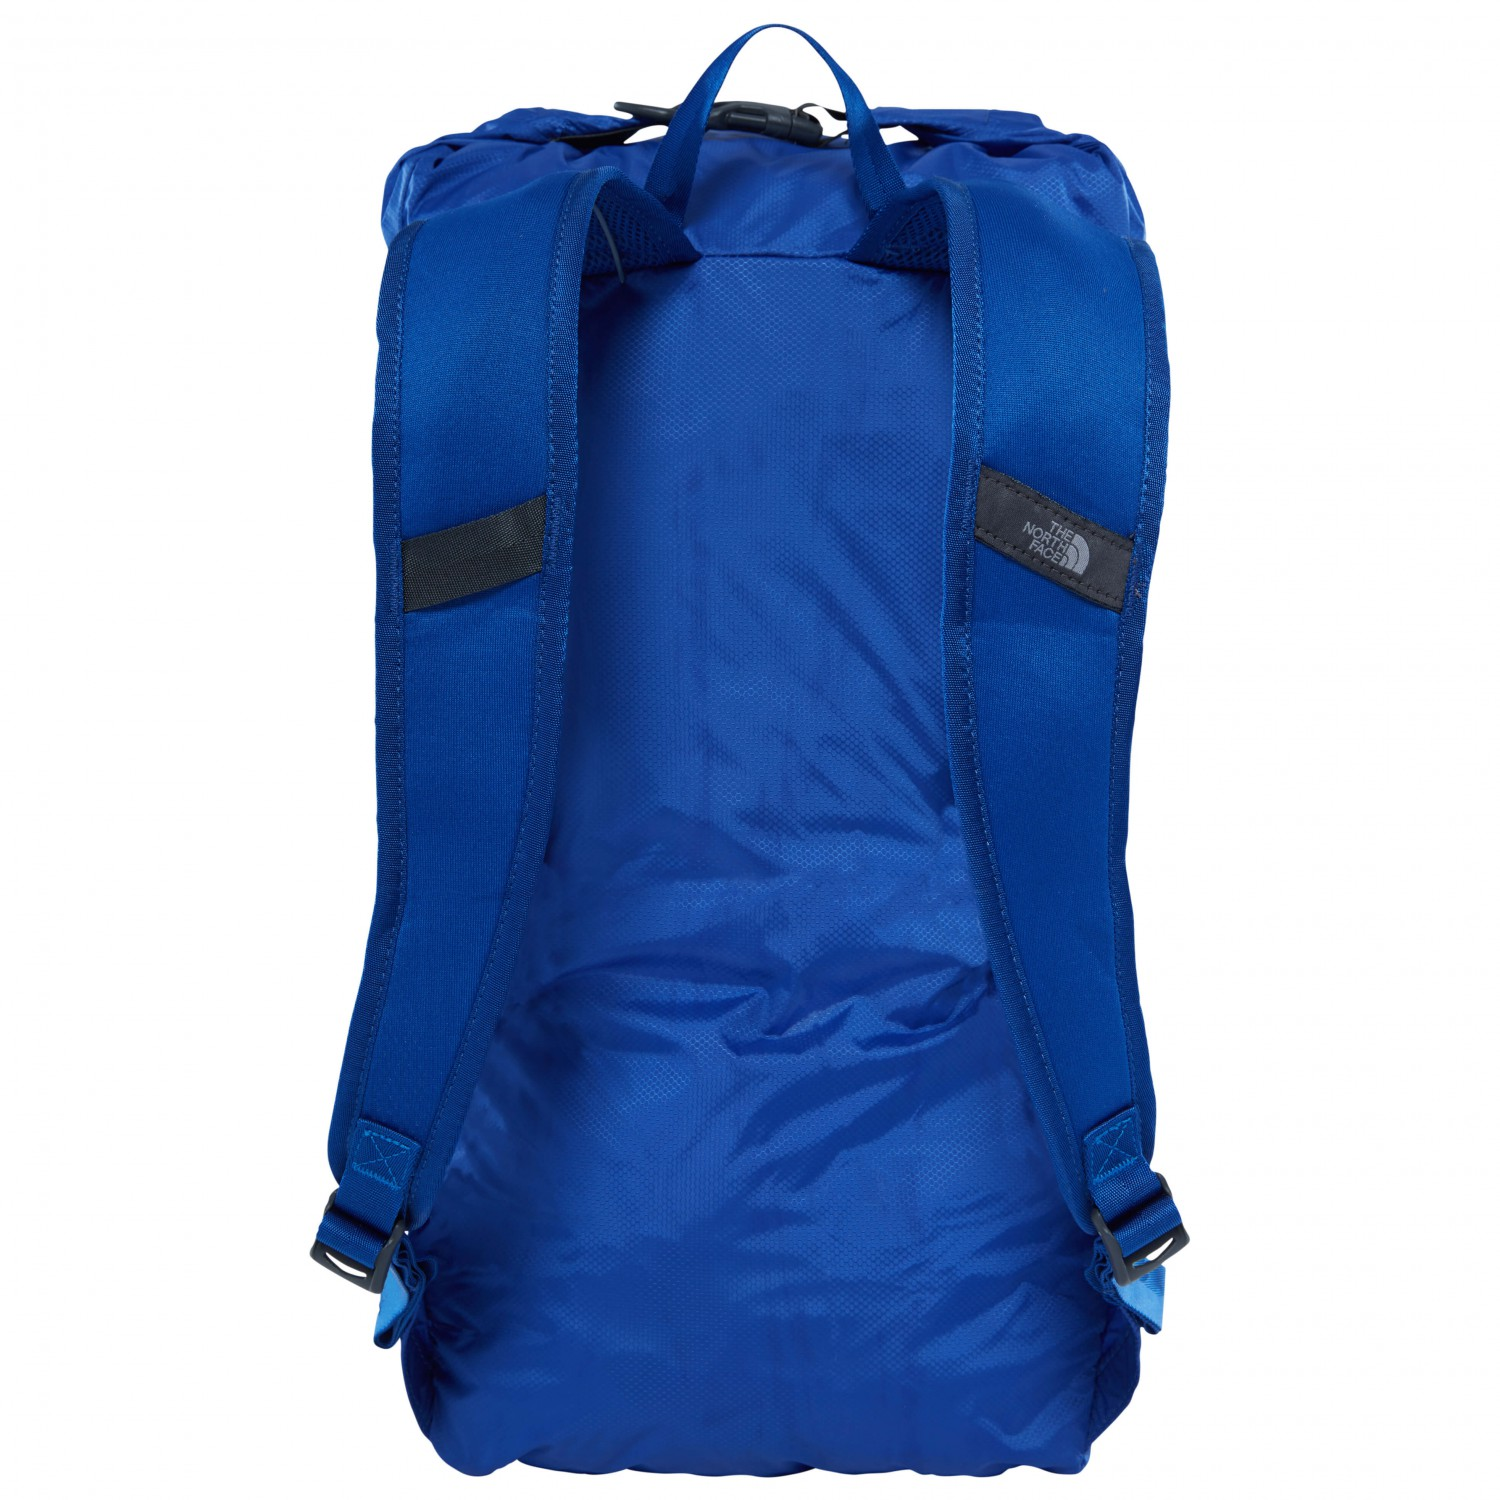 The North Face Sac à dos Flyweight Rolltop uhXK1v8bO